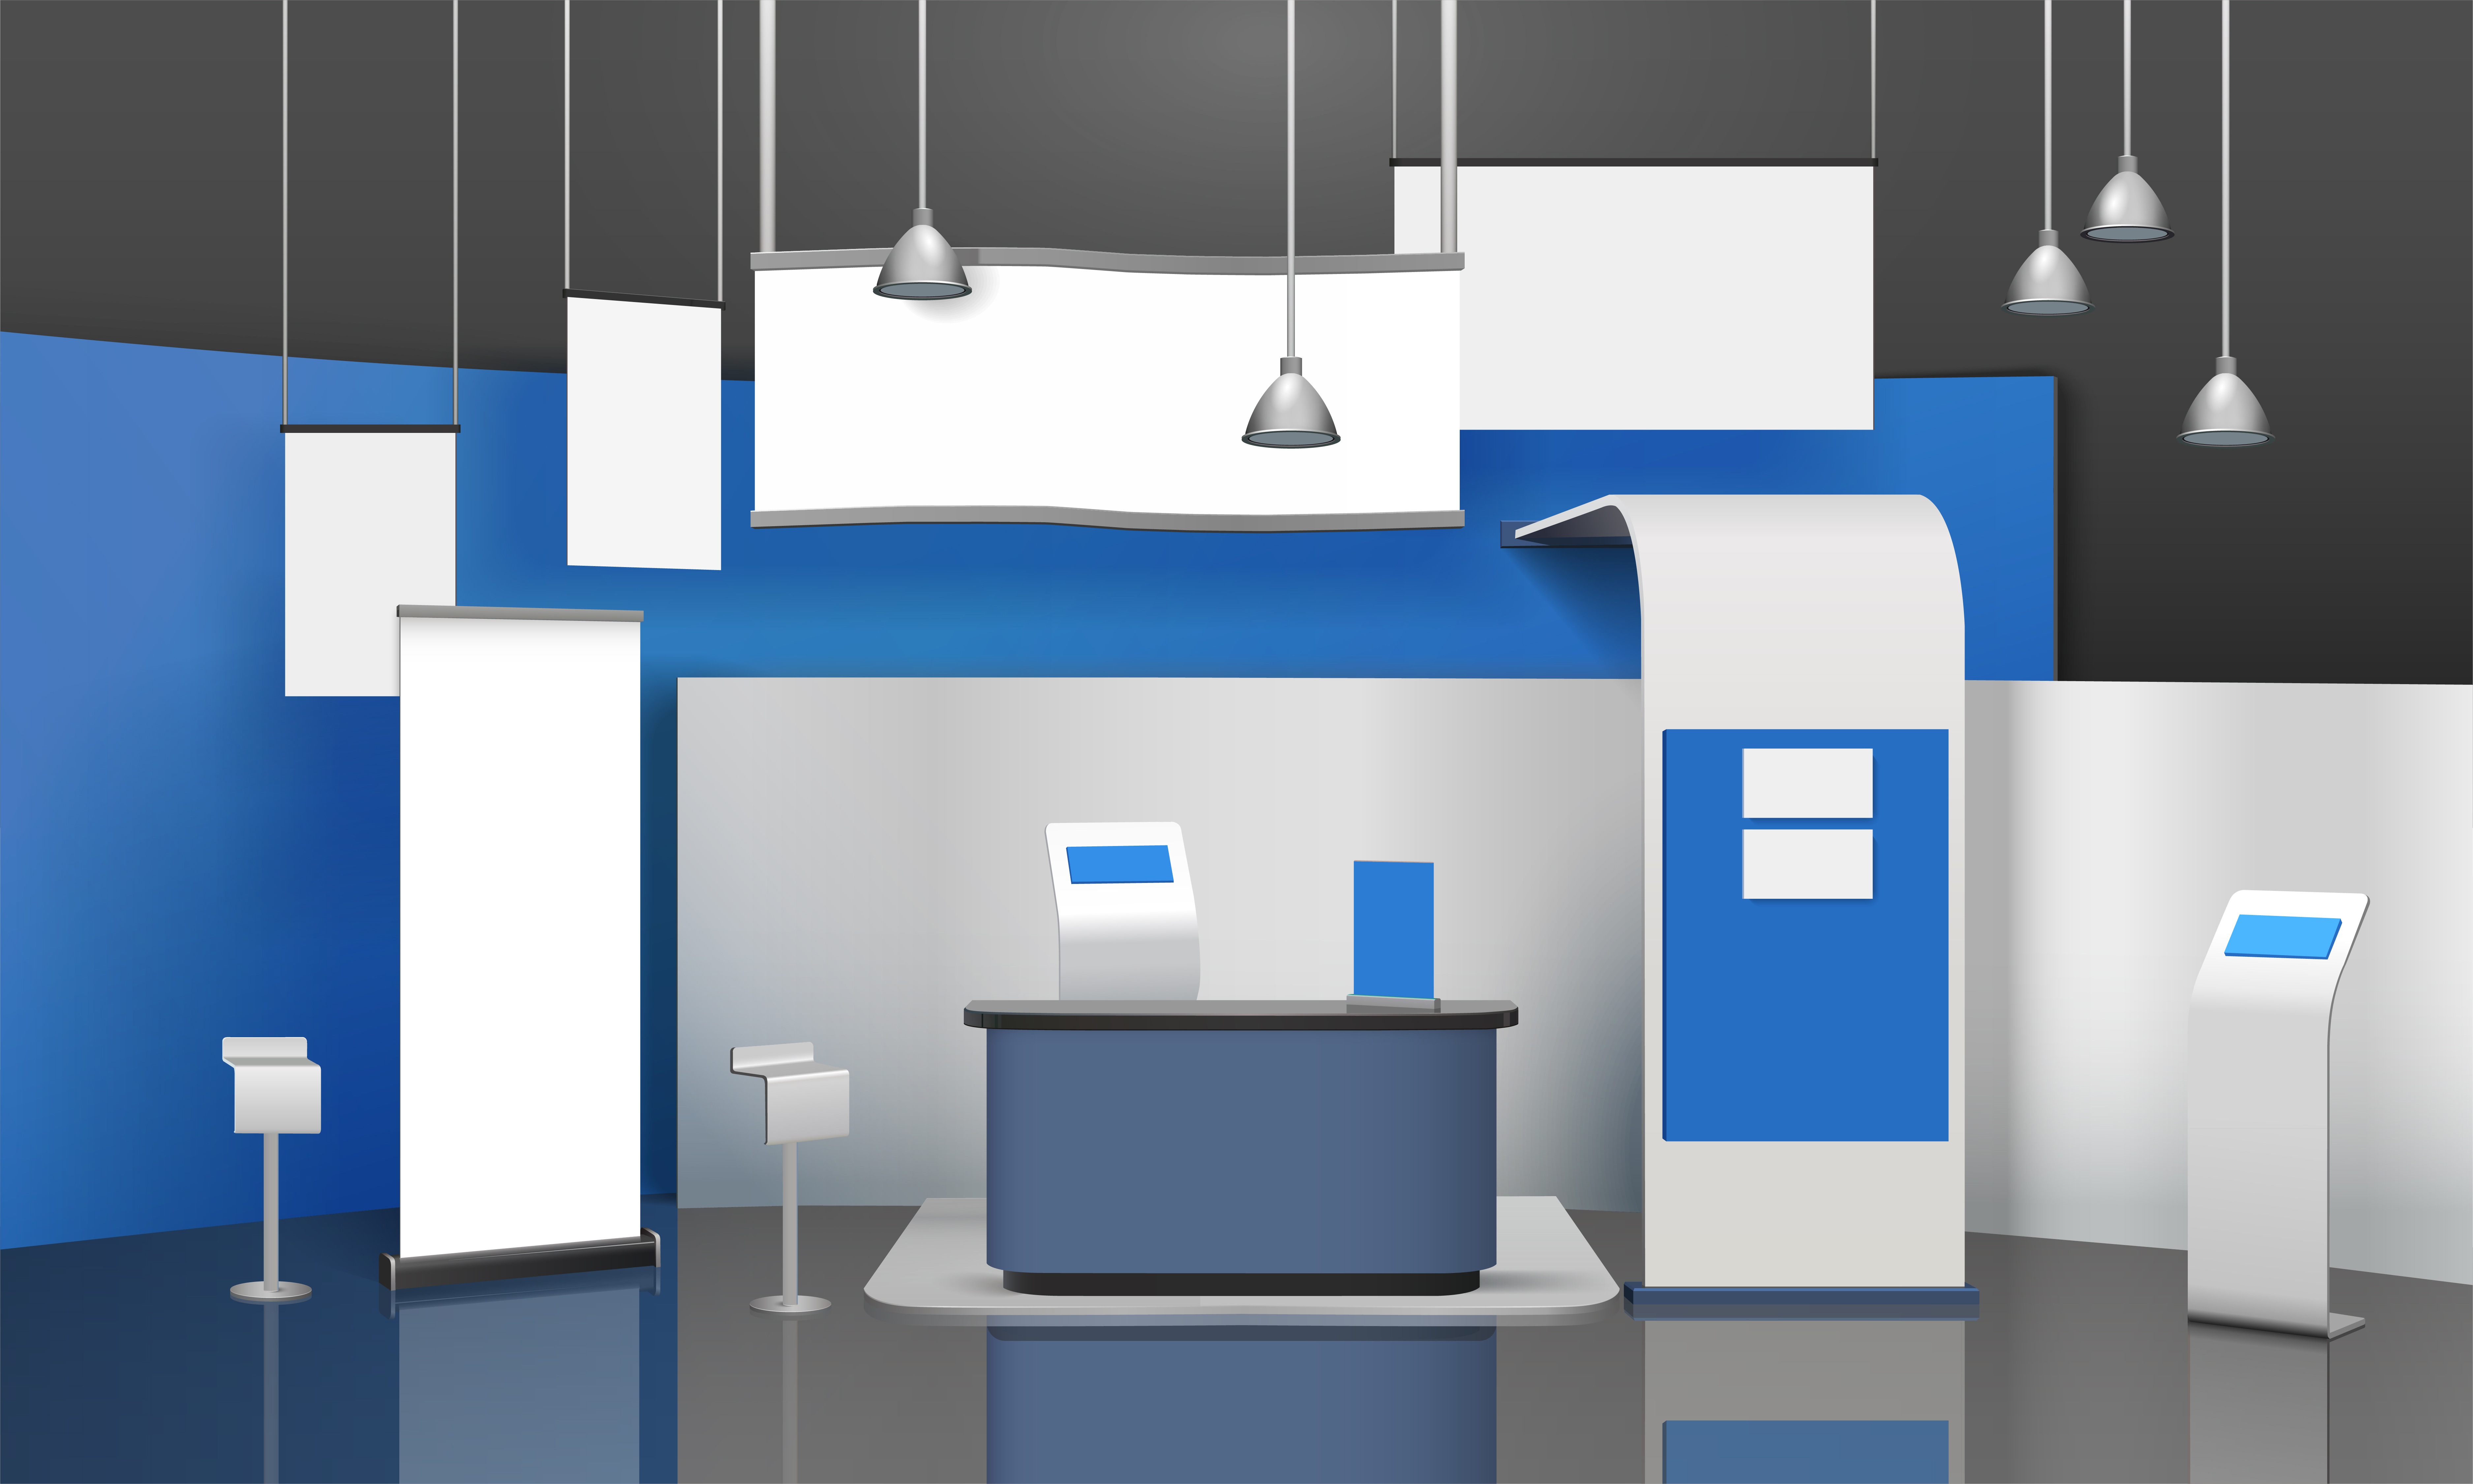 Exhibition Stall Mockup : Exposition stand mockup composition download free vector art